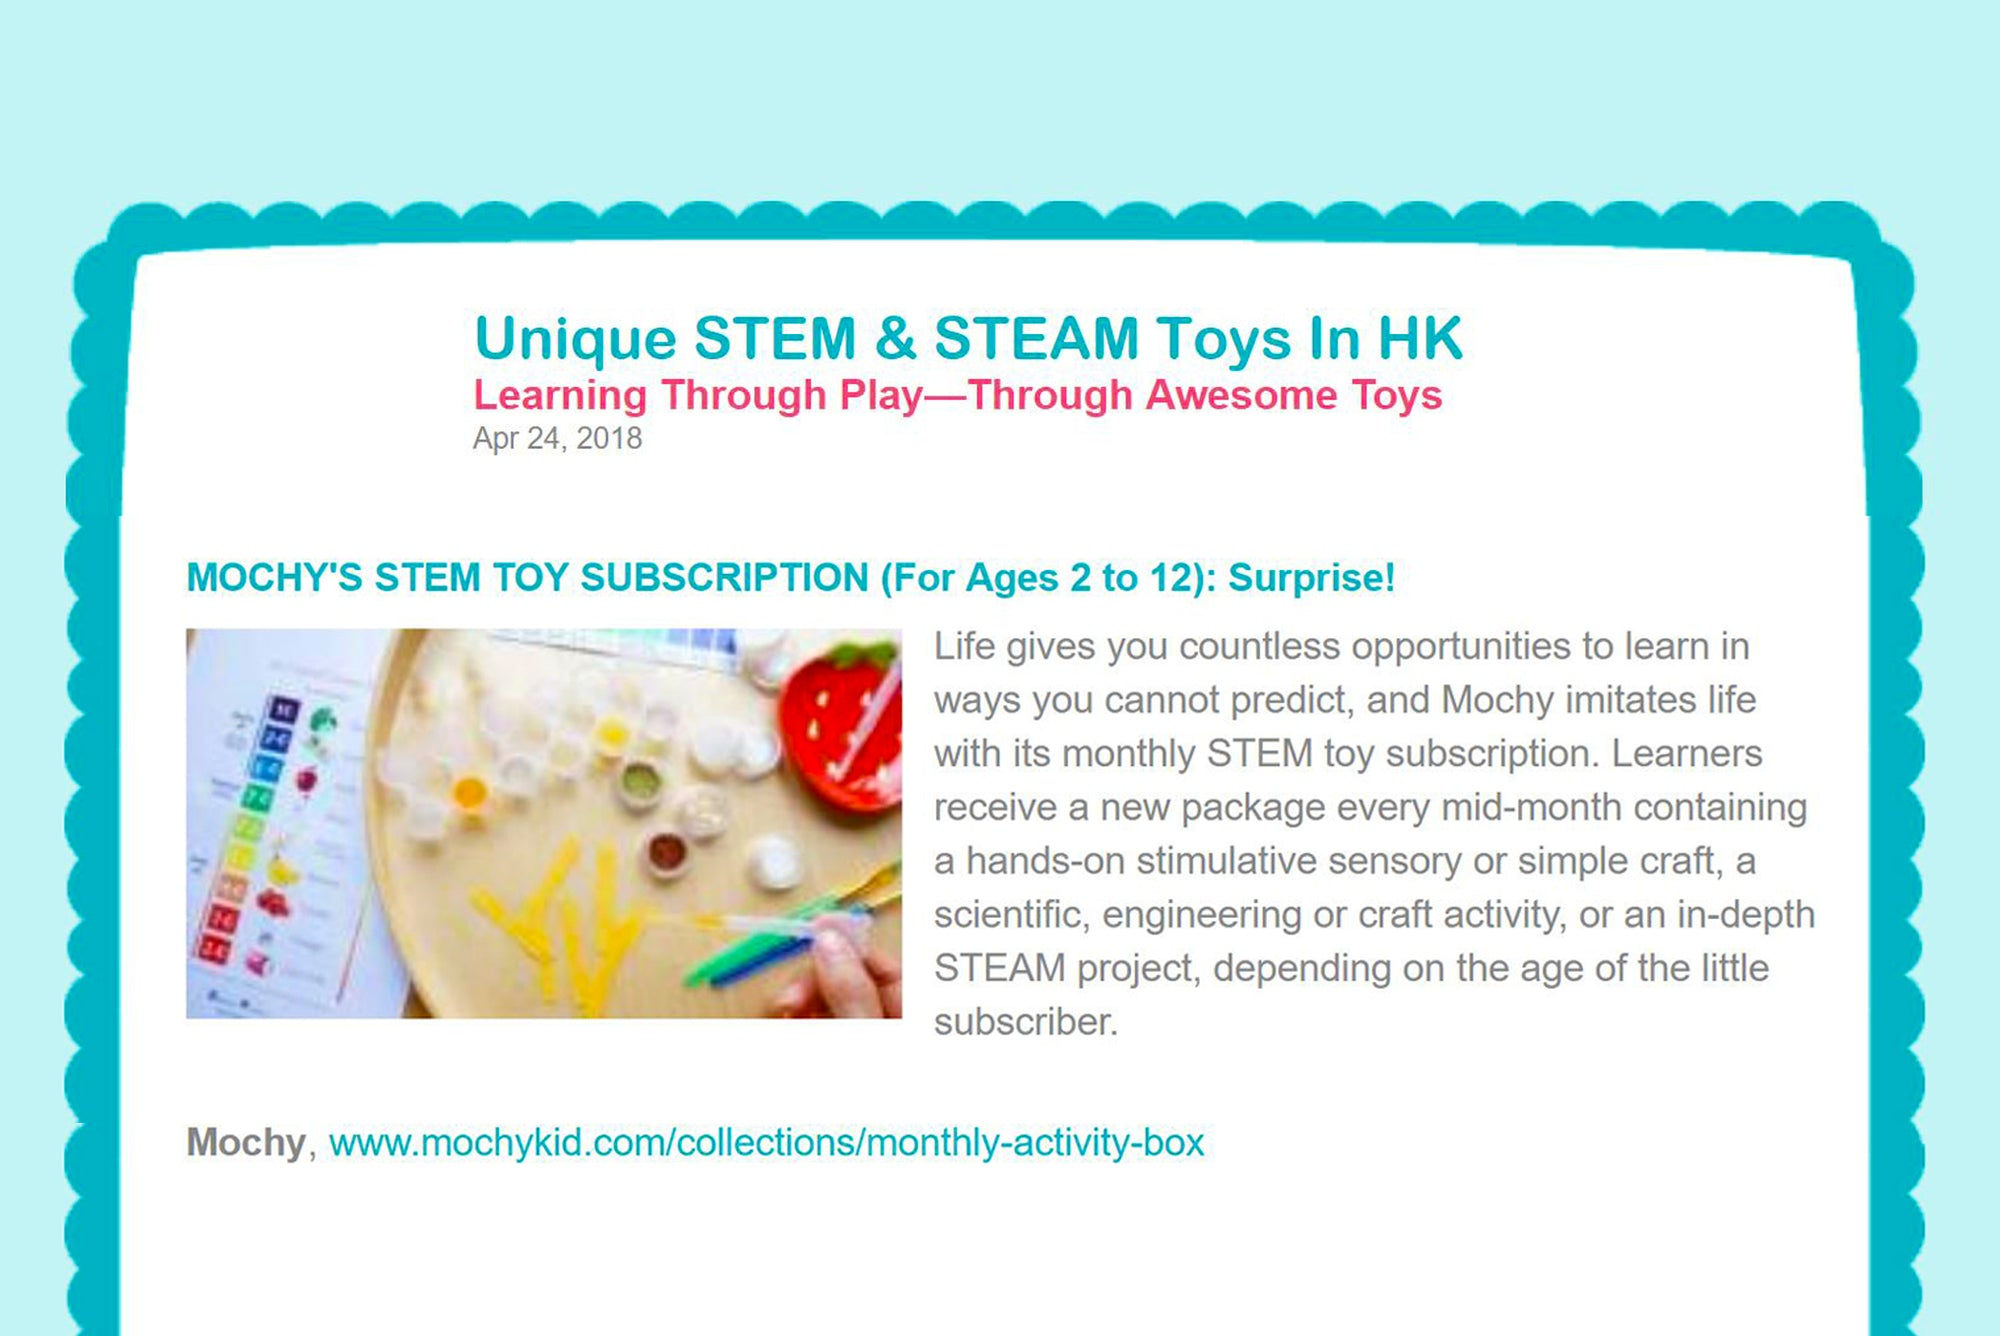 Featured in Little Steps Asia